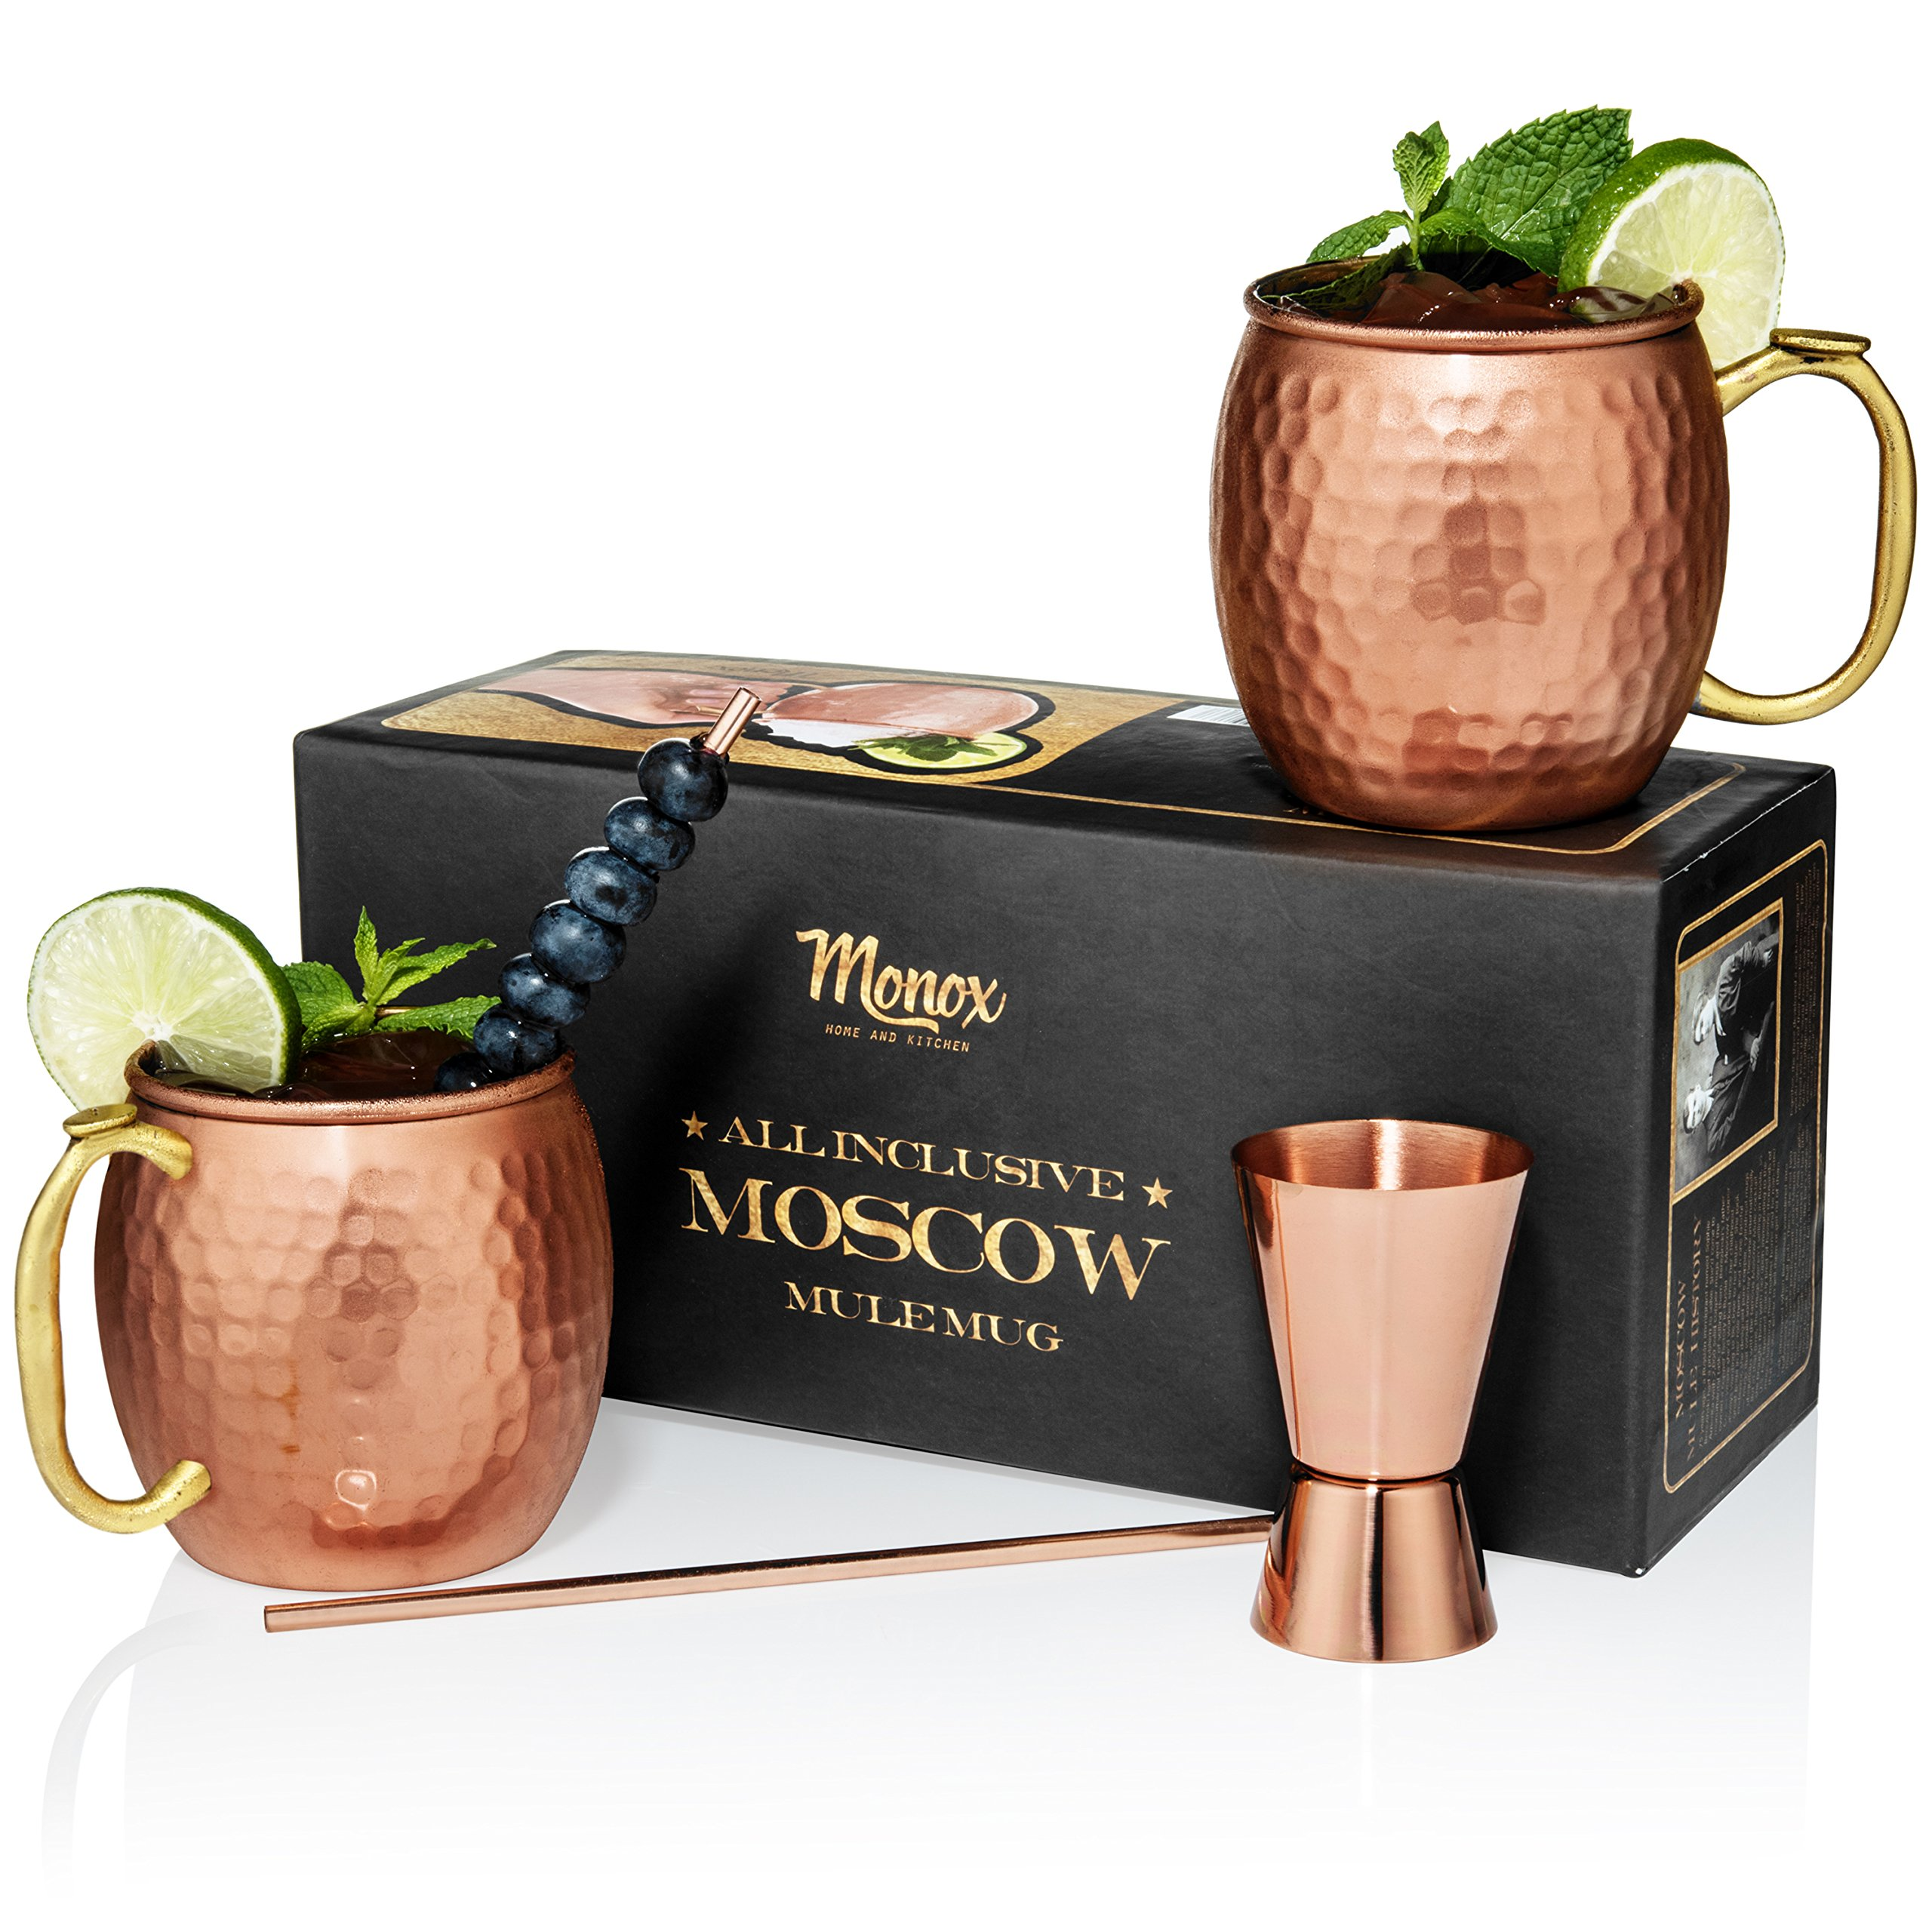 Moscow Mule Copper Mugs – Gift Set of 2-100% HANDCRAFTED – Food Safe Pure Solid Copper Tumblers - 16 oz - BONUS Highest Quality Cocktail Straws & Jigger (Shot Glass) – BRASS THUMB REST!